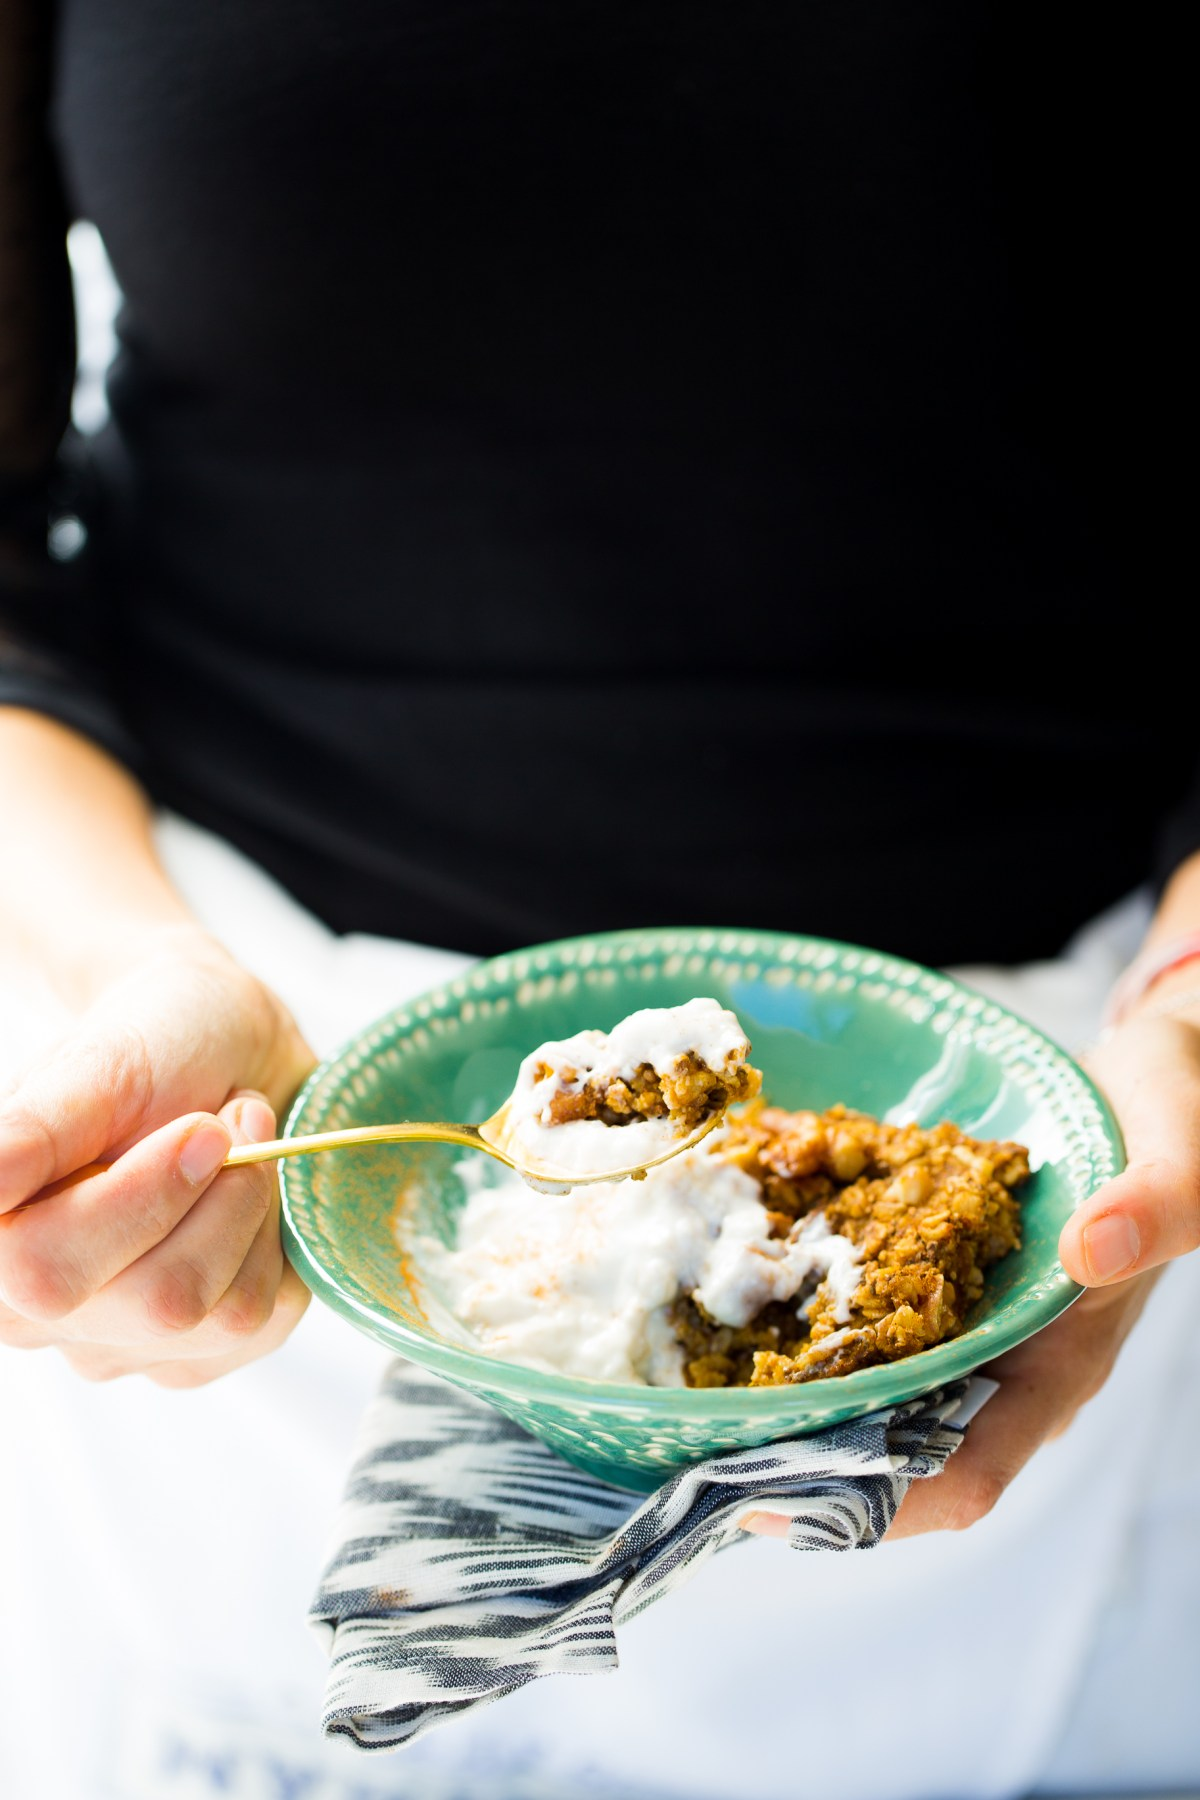 Baked oats with pumpkin spice mix vegan recipe for a healthy breakfast.